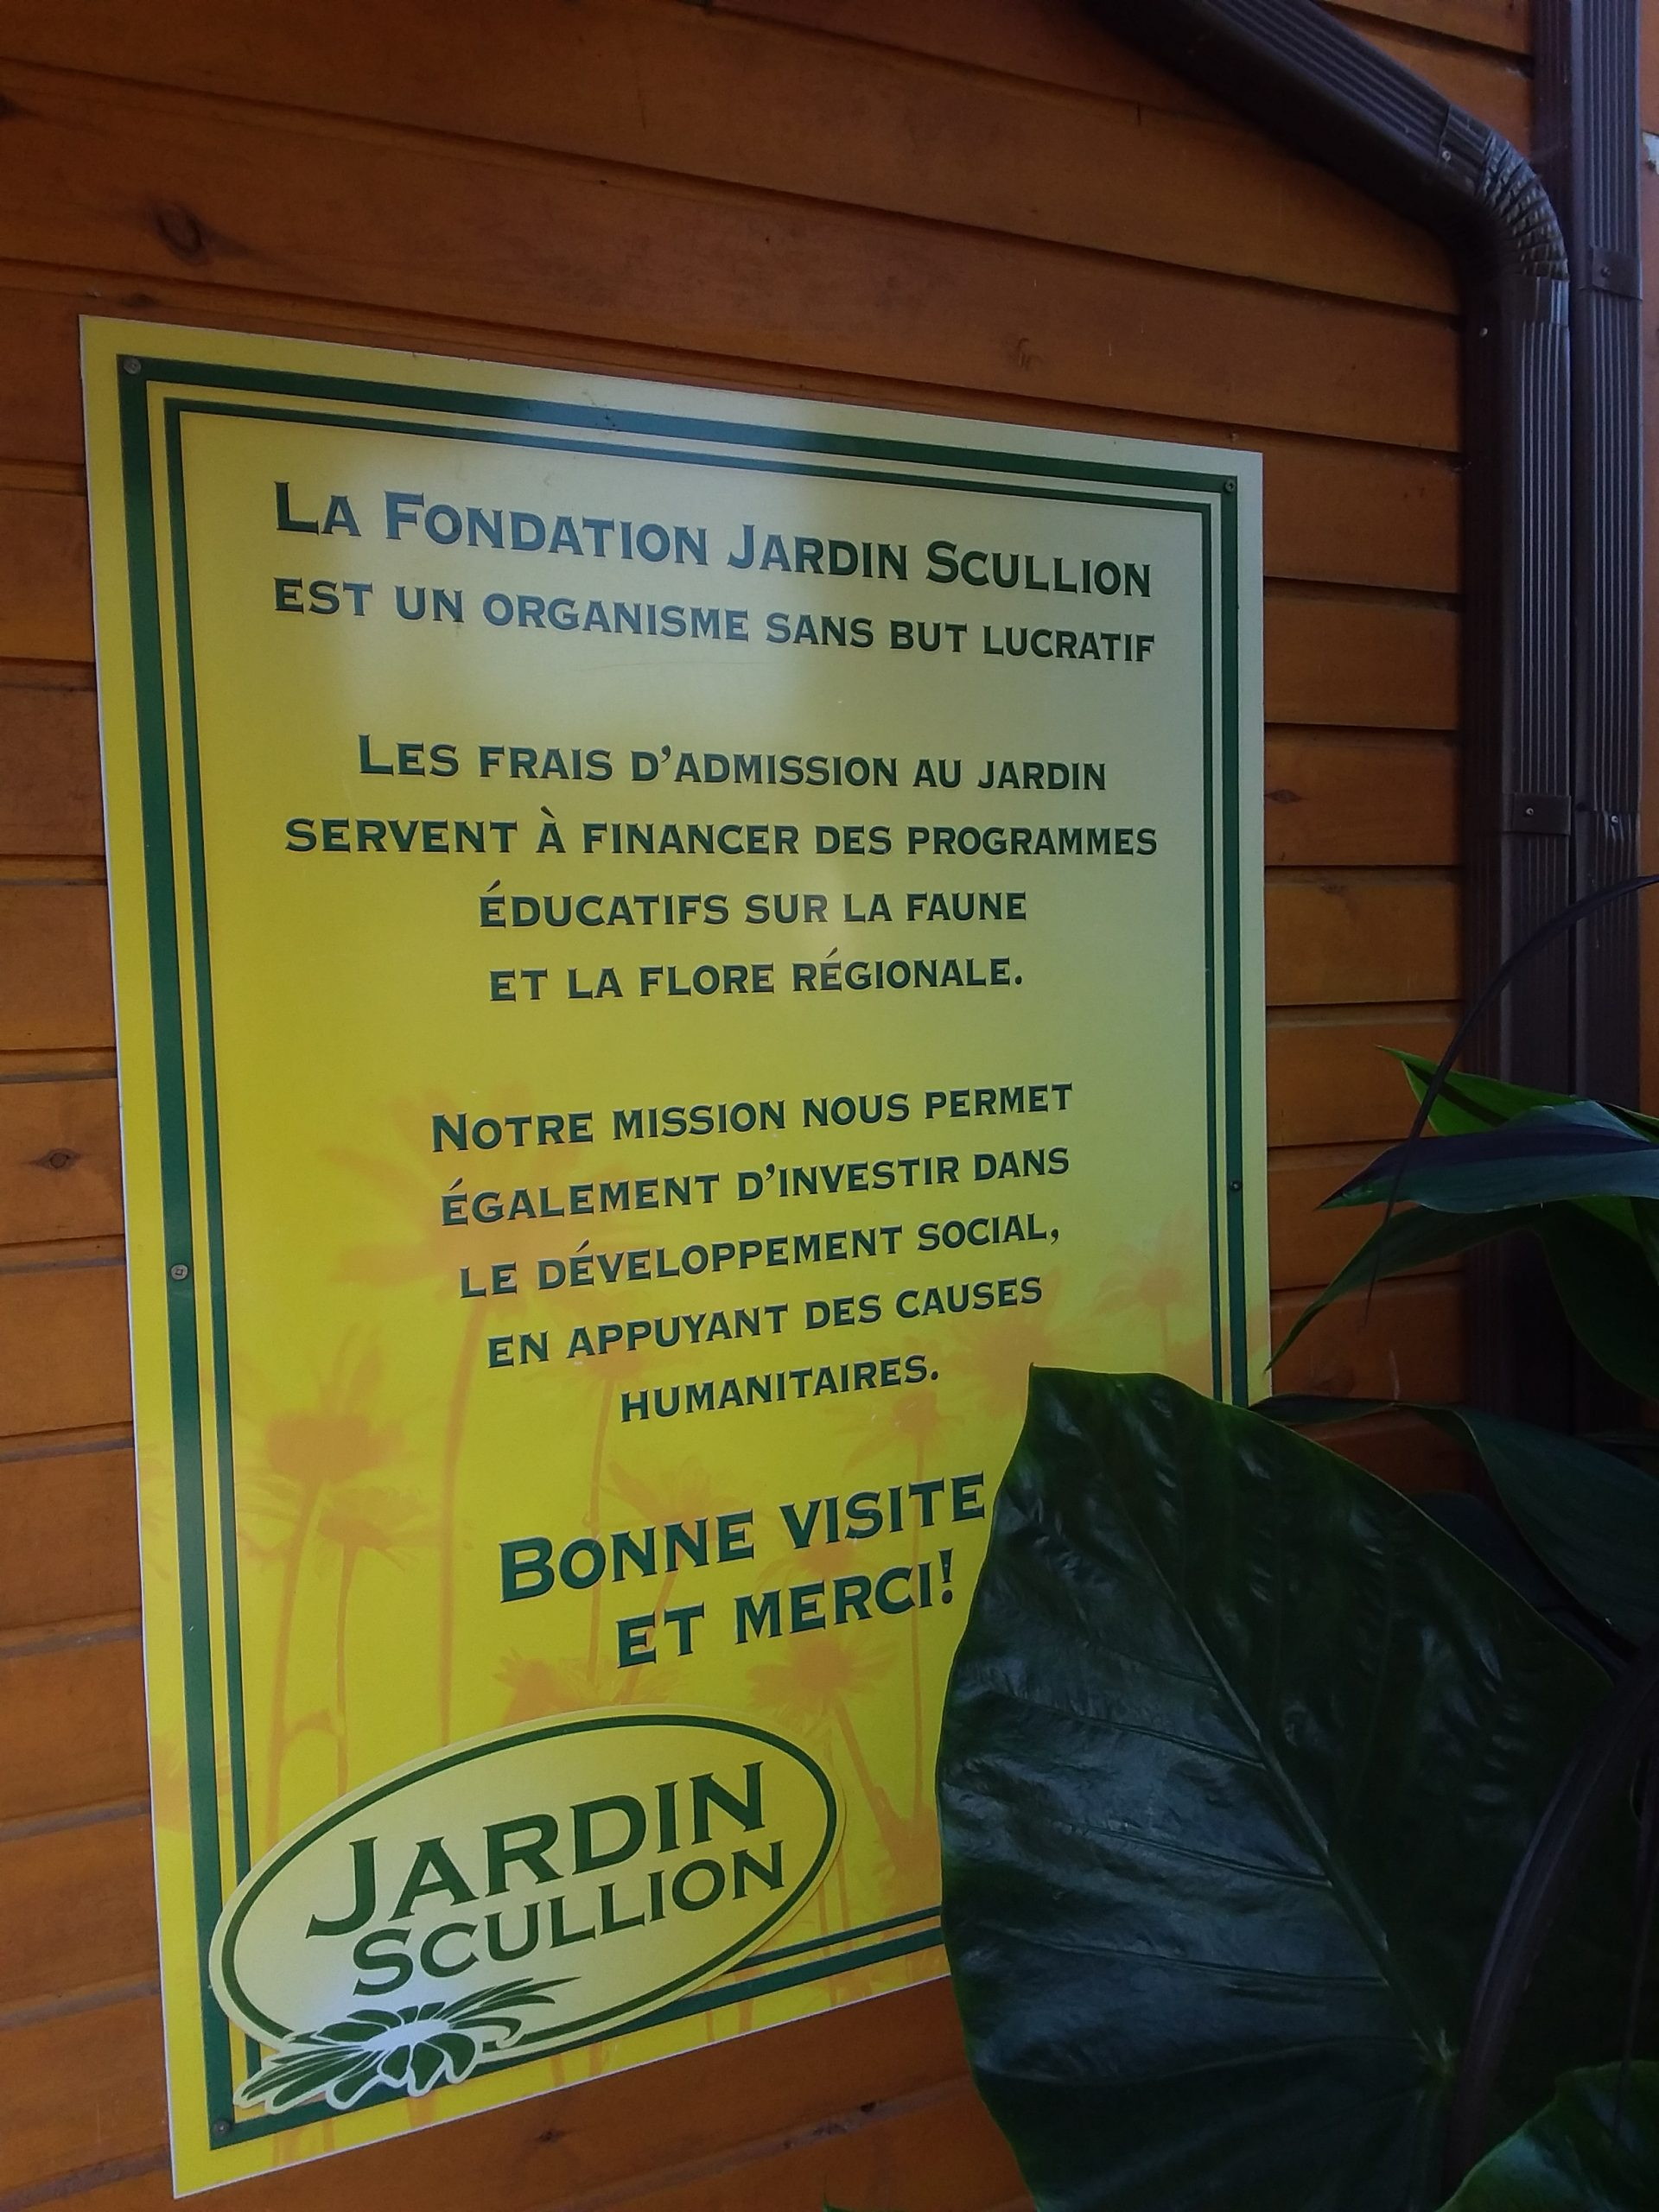 Fondation jardin scullion